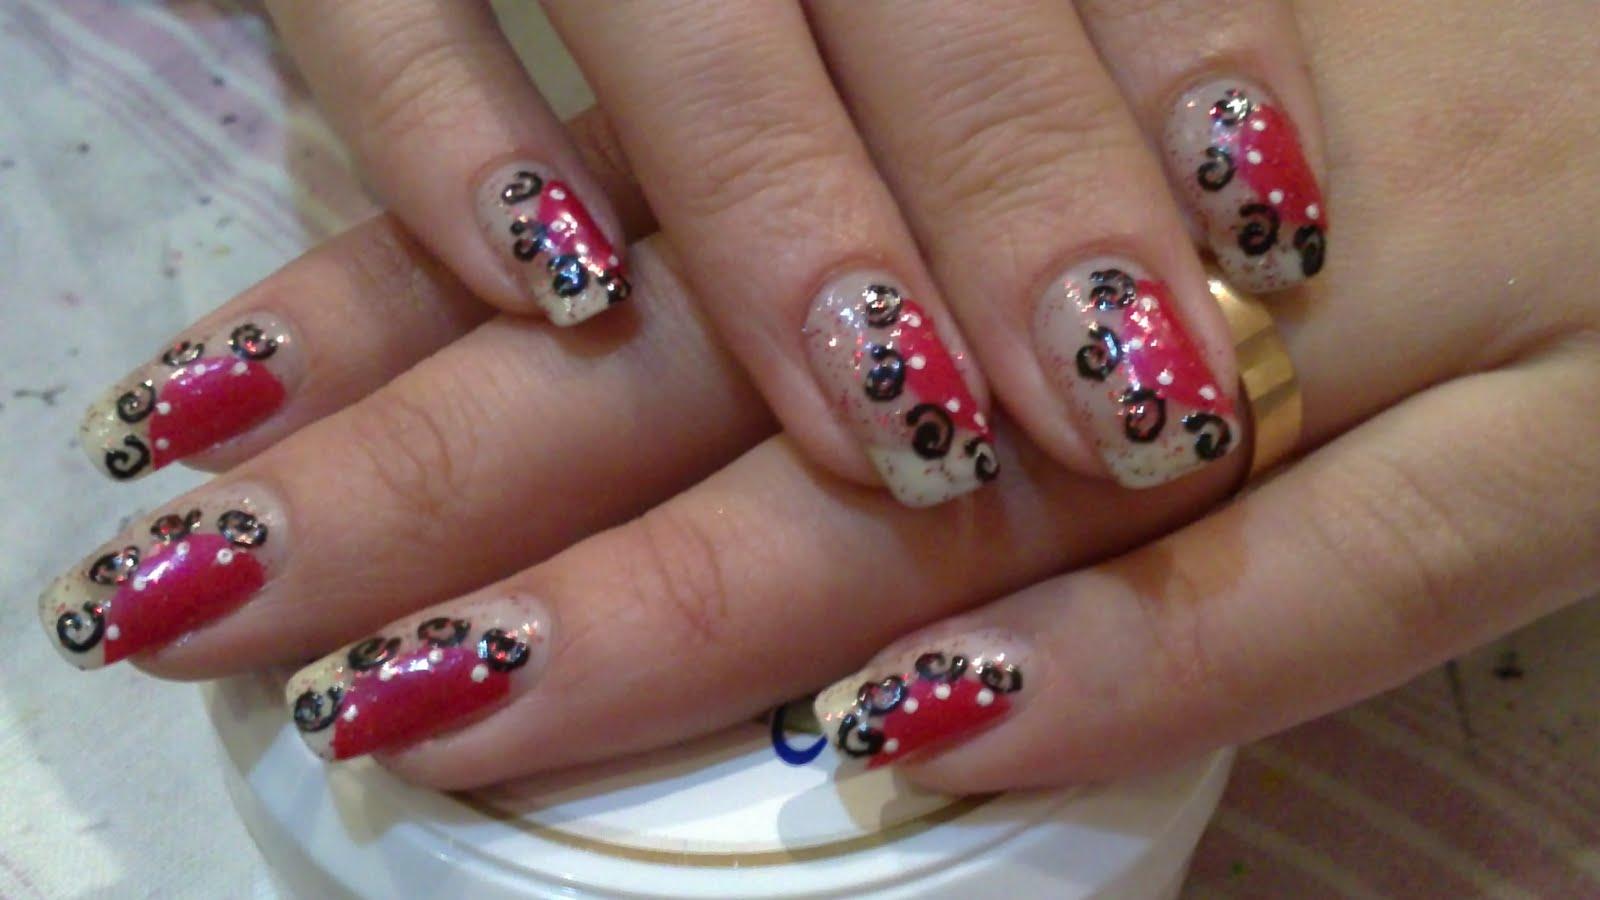 The Awesome Cute glitter nail designs Digital Imagery